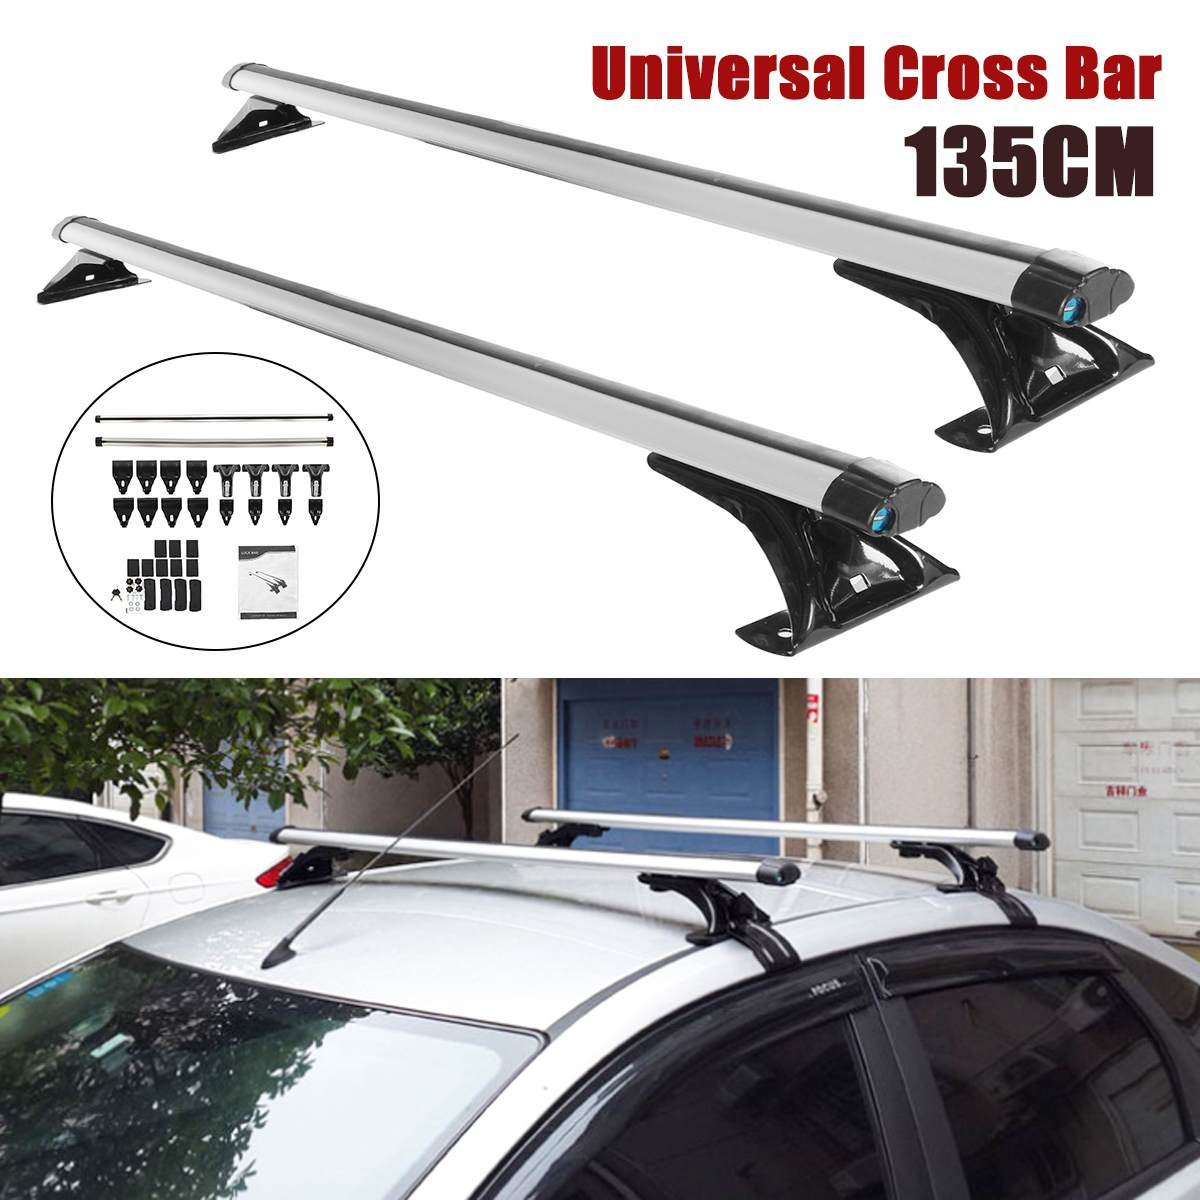 135cm Universal Car Roof Racks Crossbar Auto Top Luggage Support Bar Aluminum Bicycle Carrier Rack Roof Rail For SUV Pickups